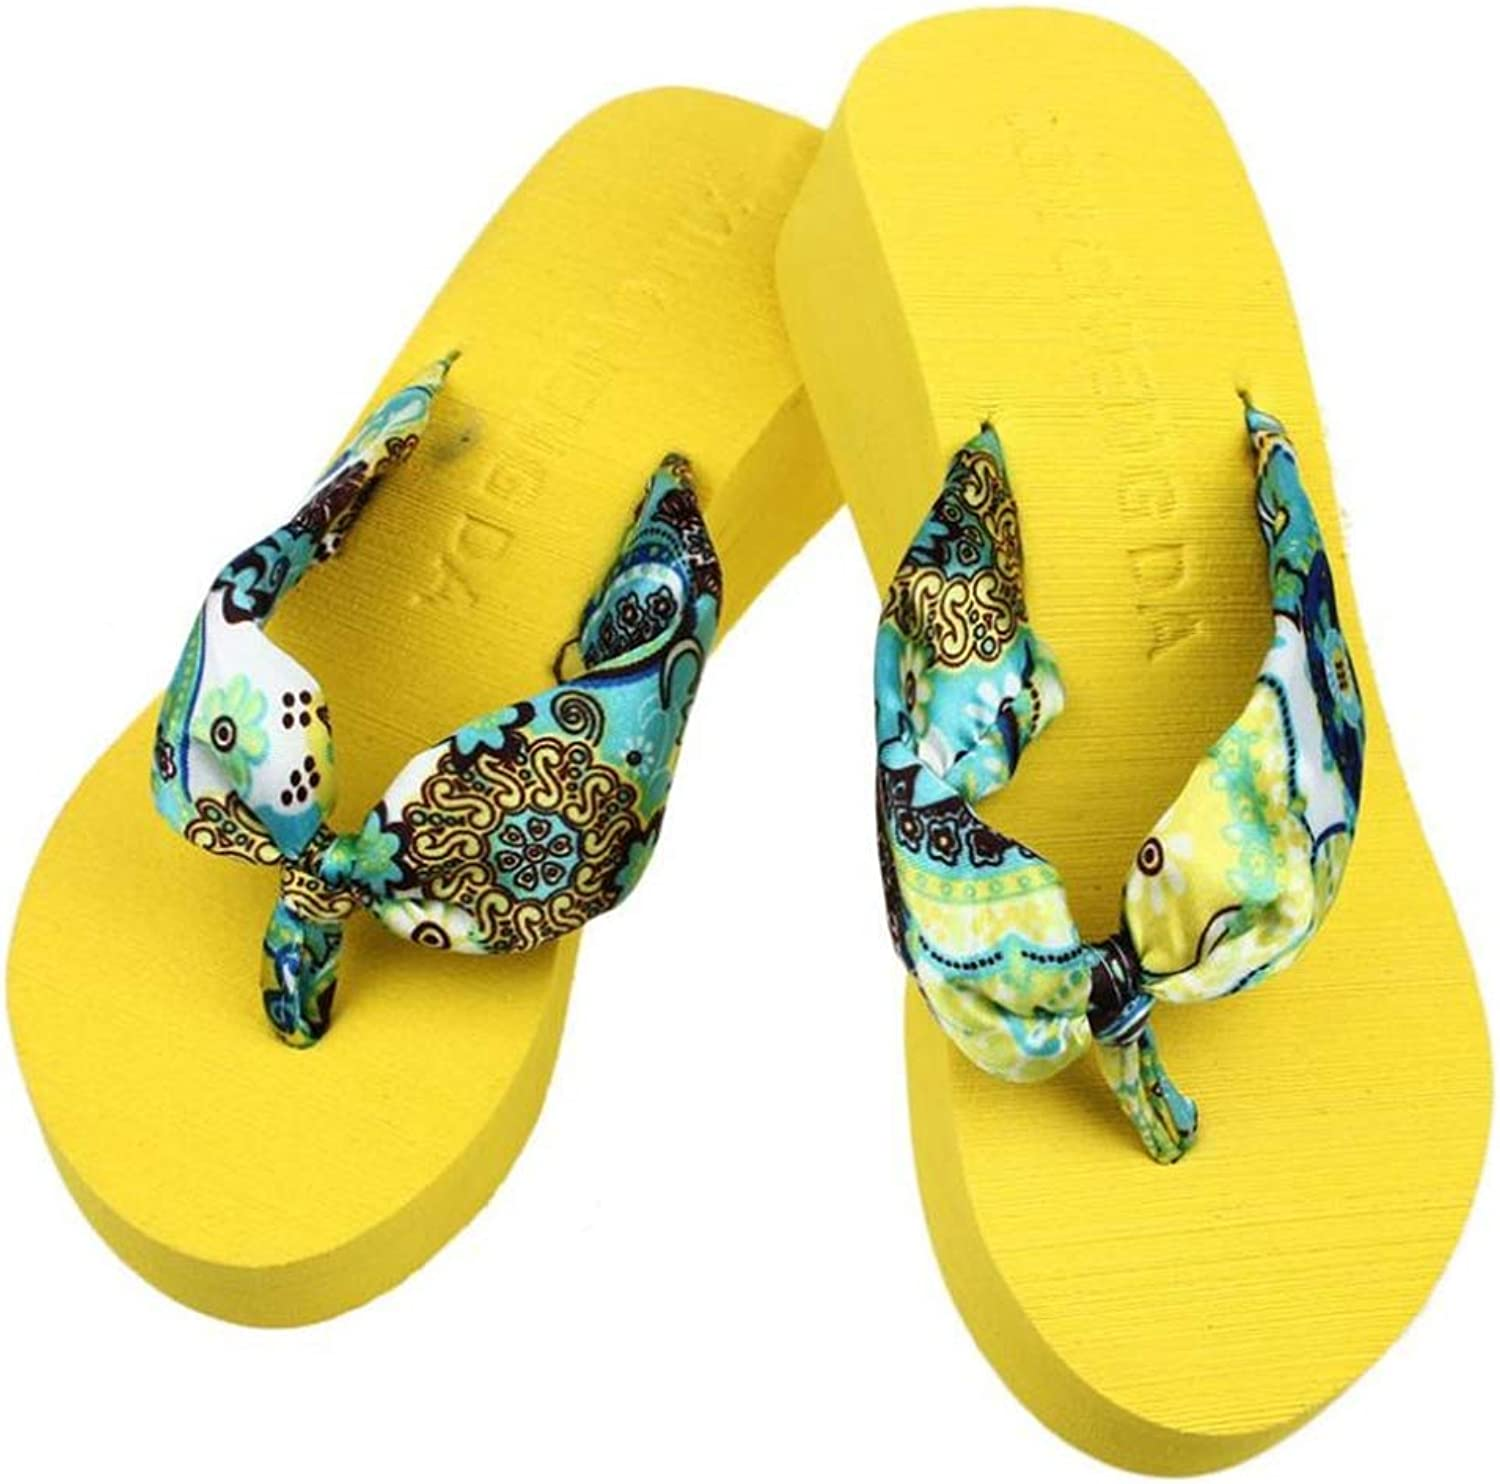 T-JULY Women's Sandals for Beach Wedge Platform Thong Flip Flops Casual Slippers